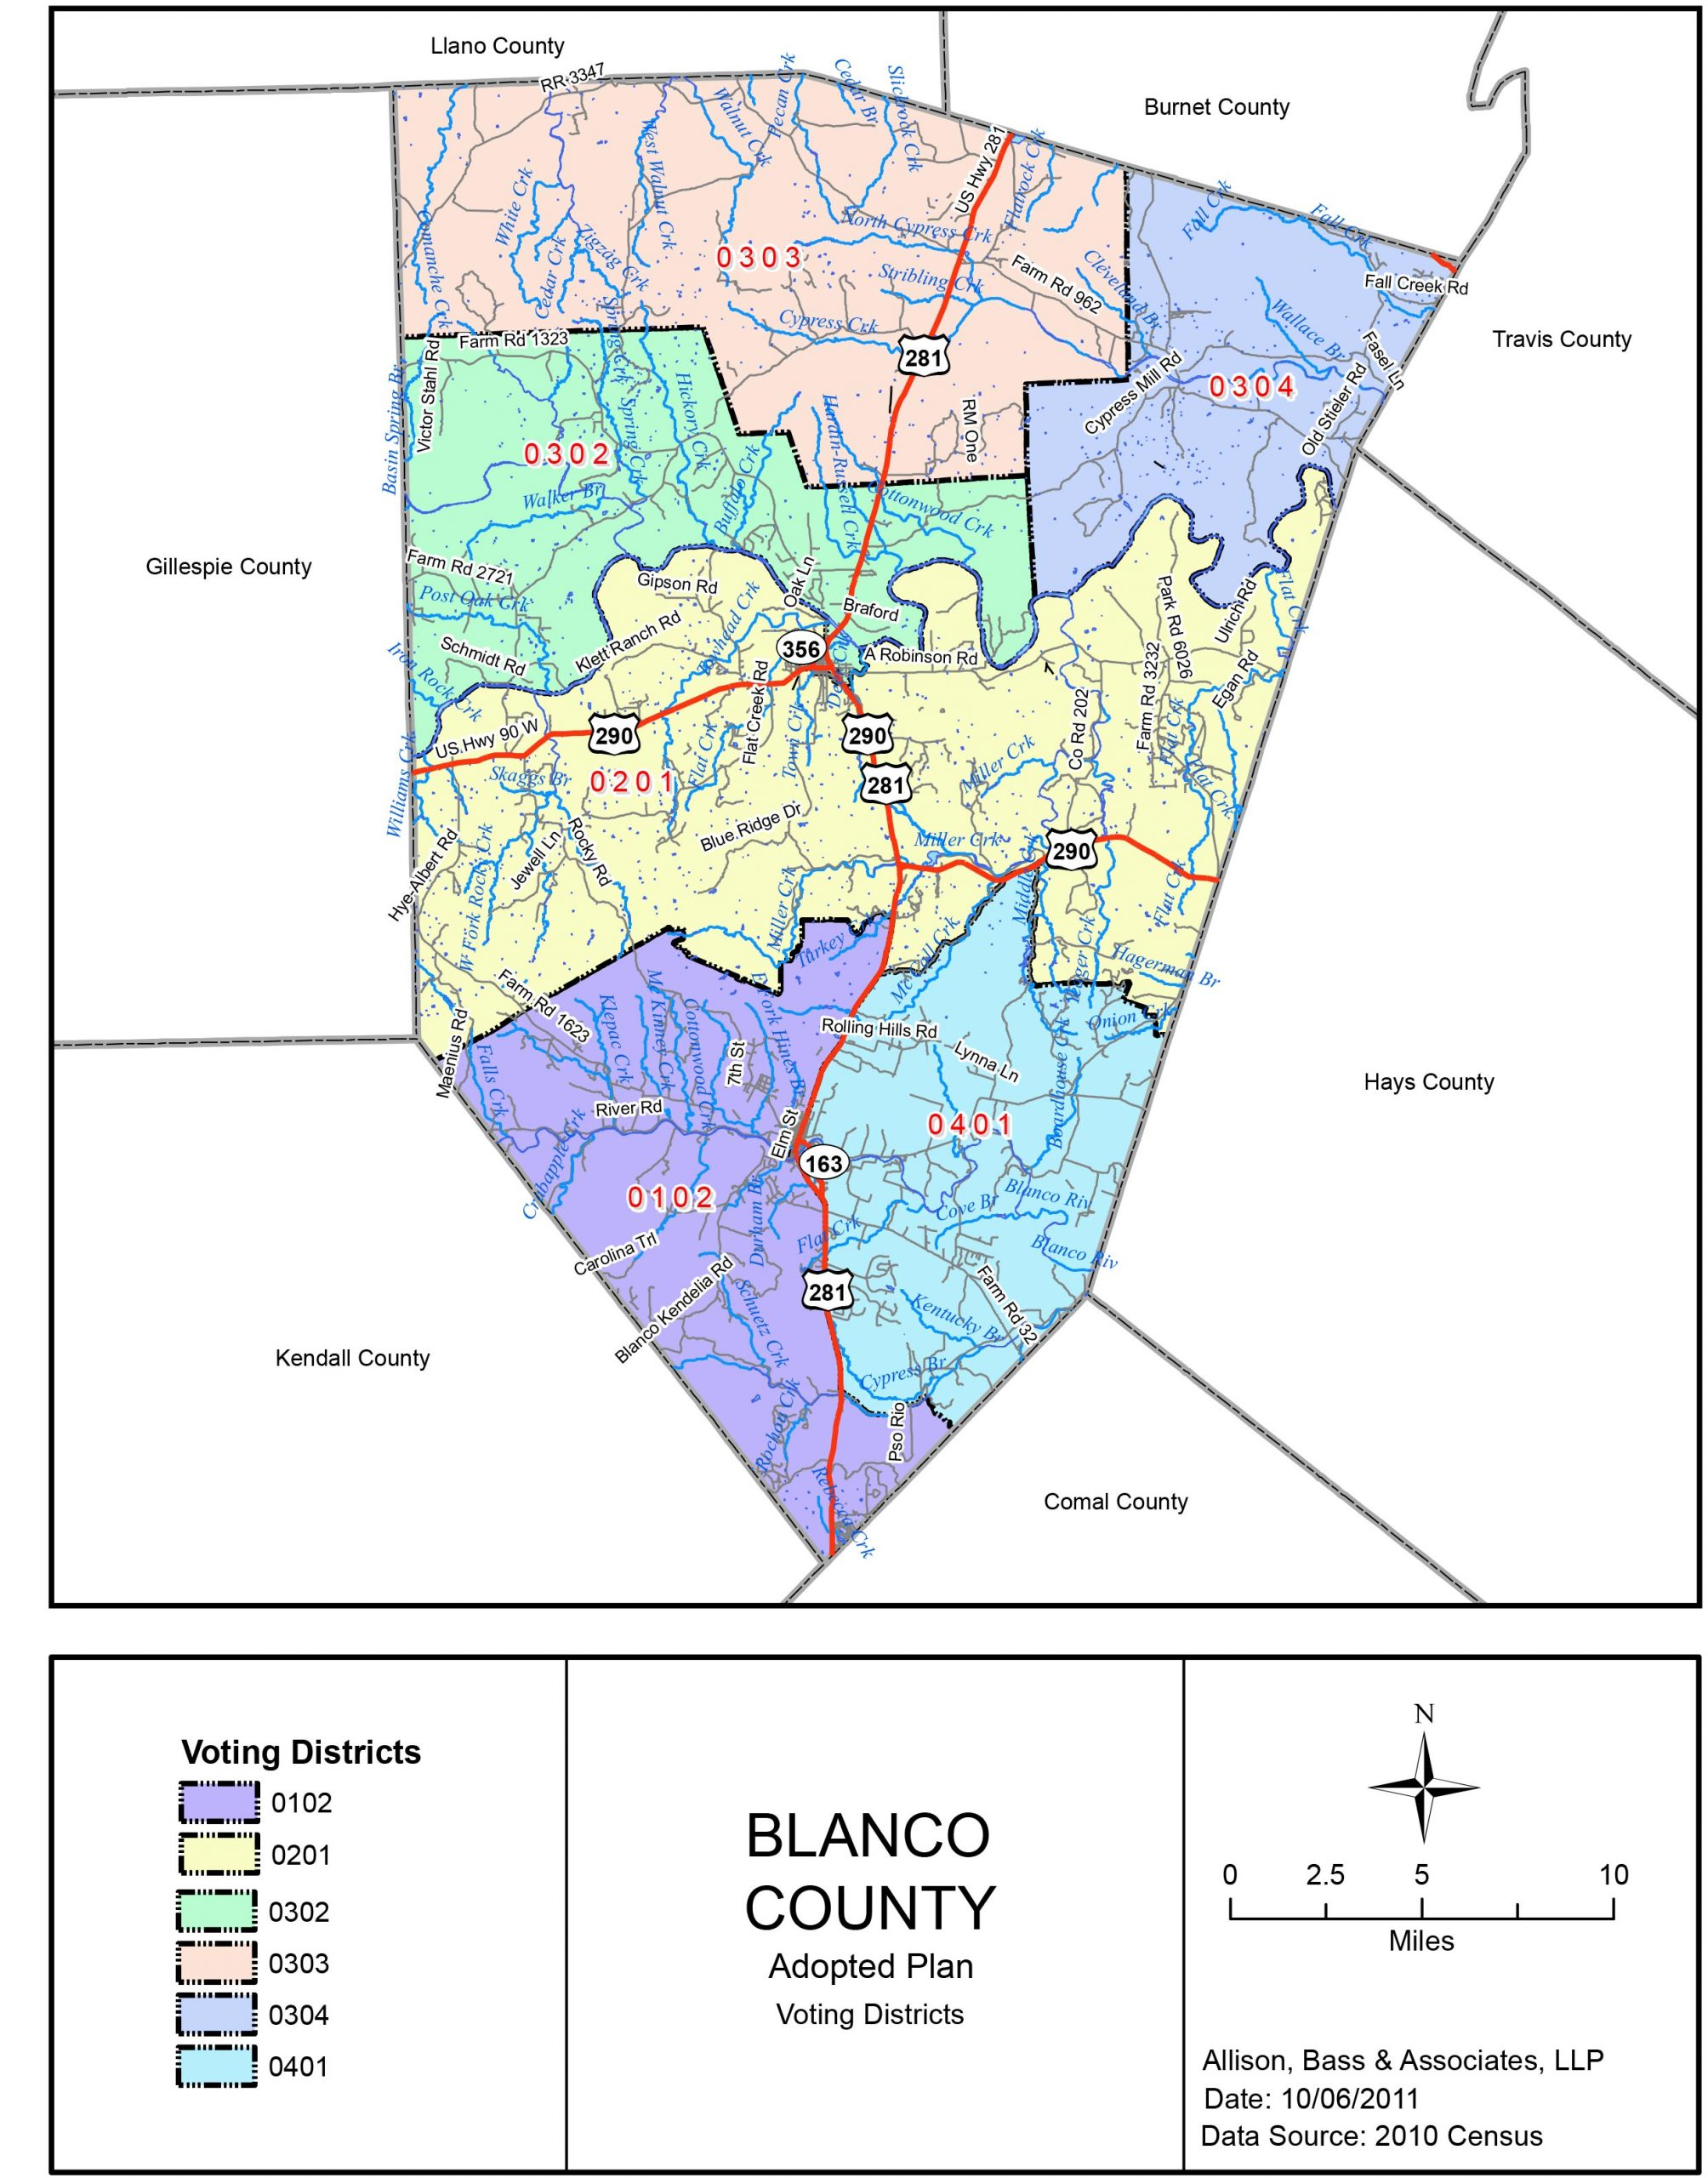 blanco-county-voting-precincts-district-map-2011